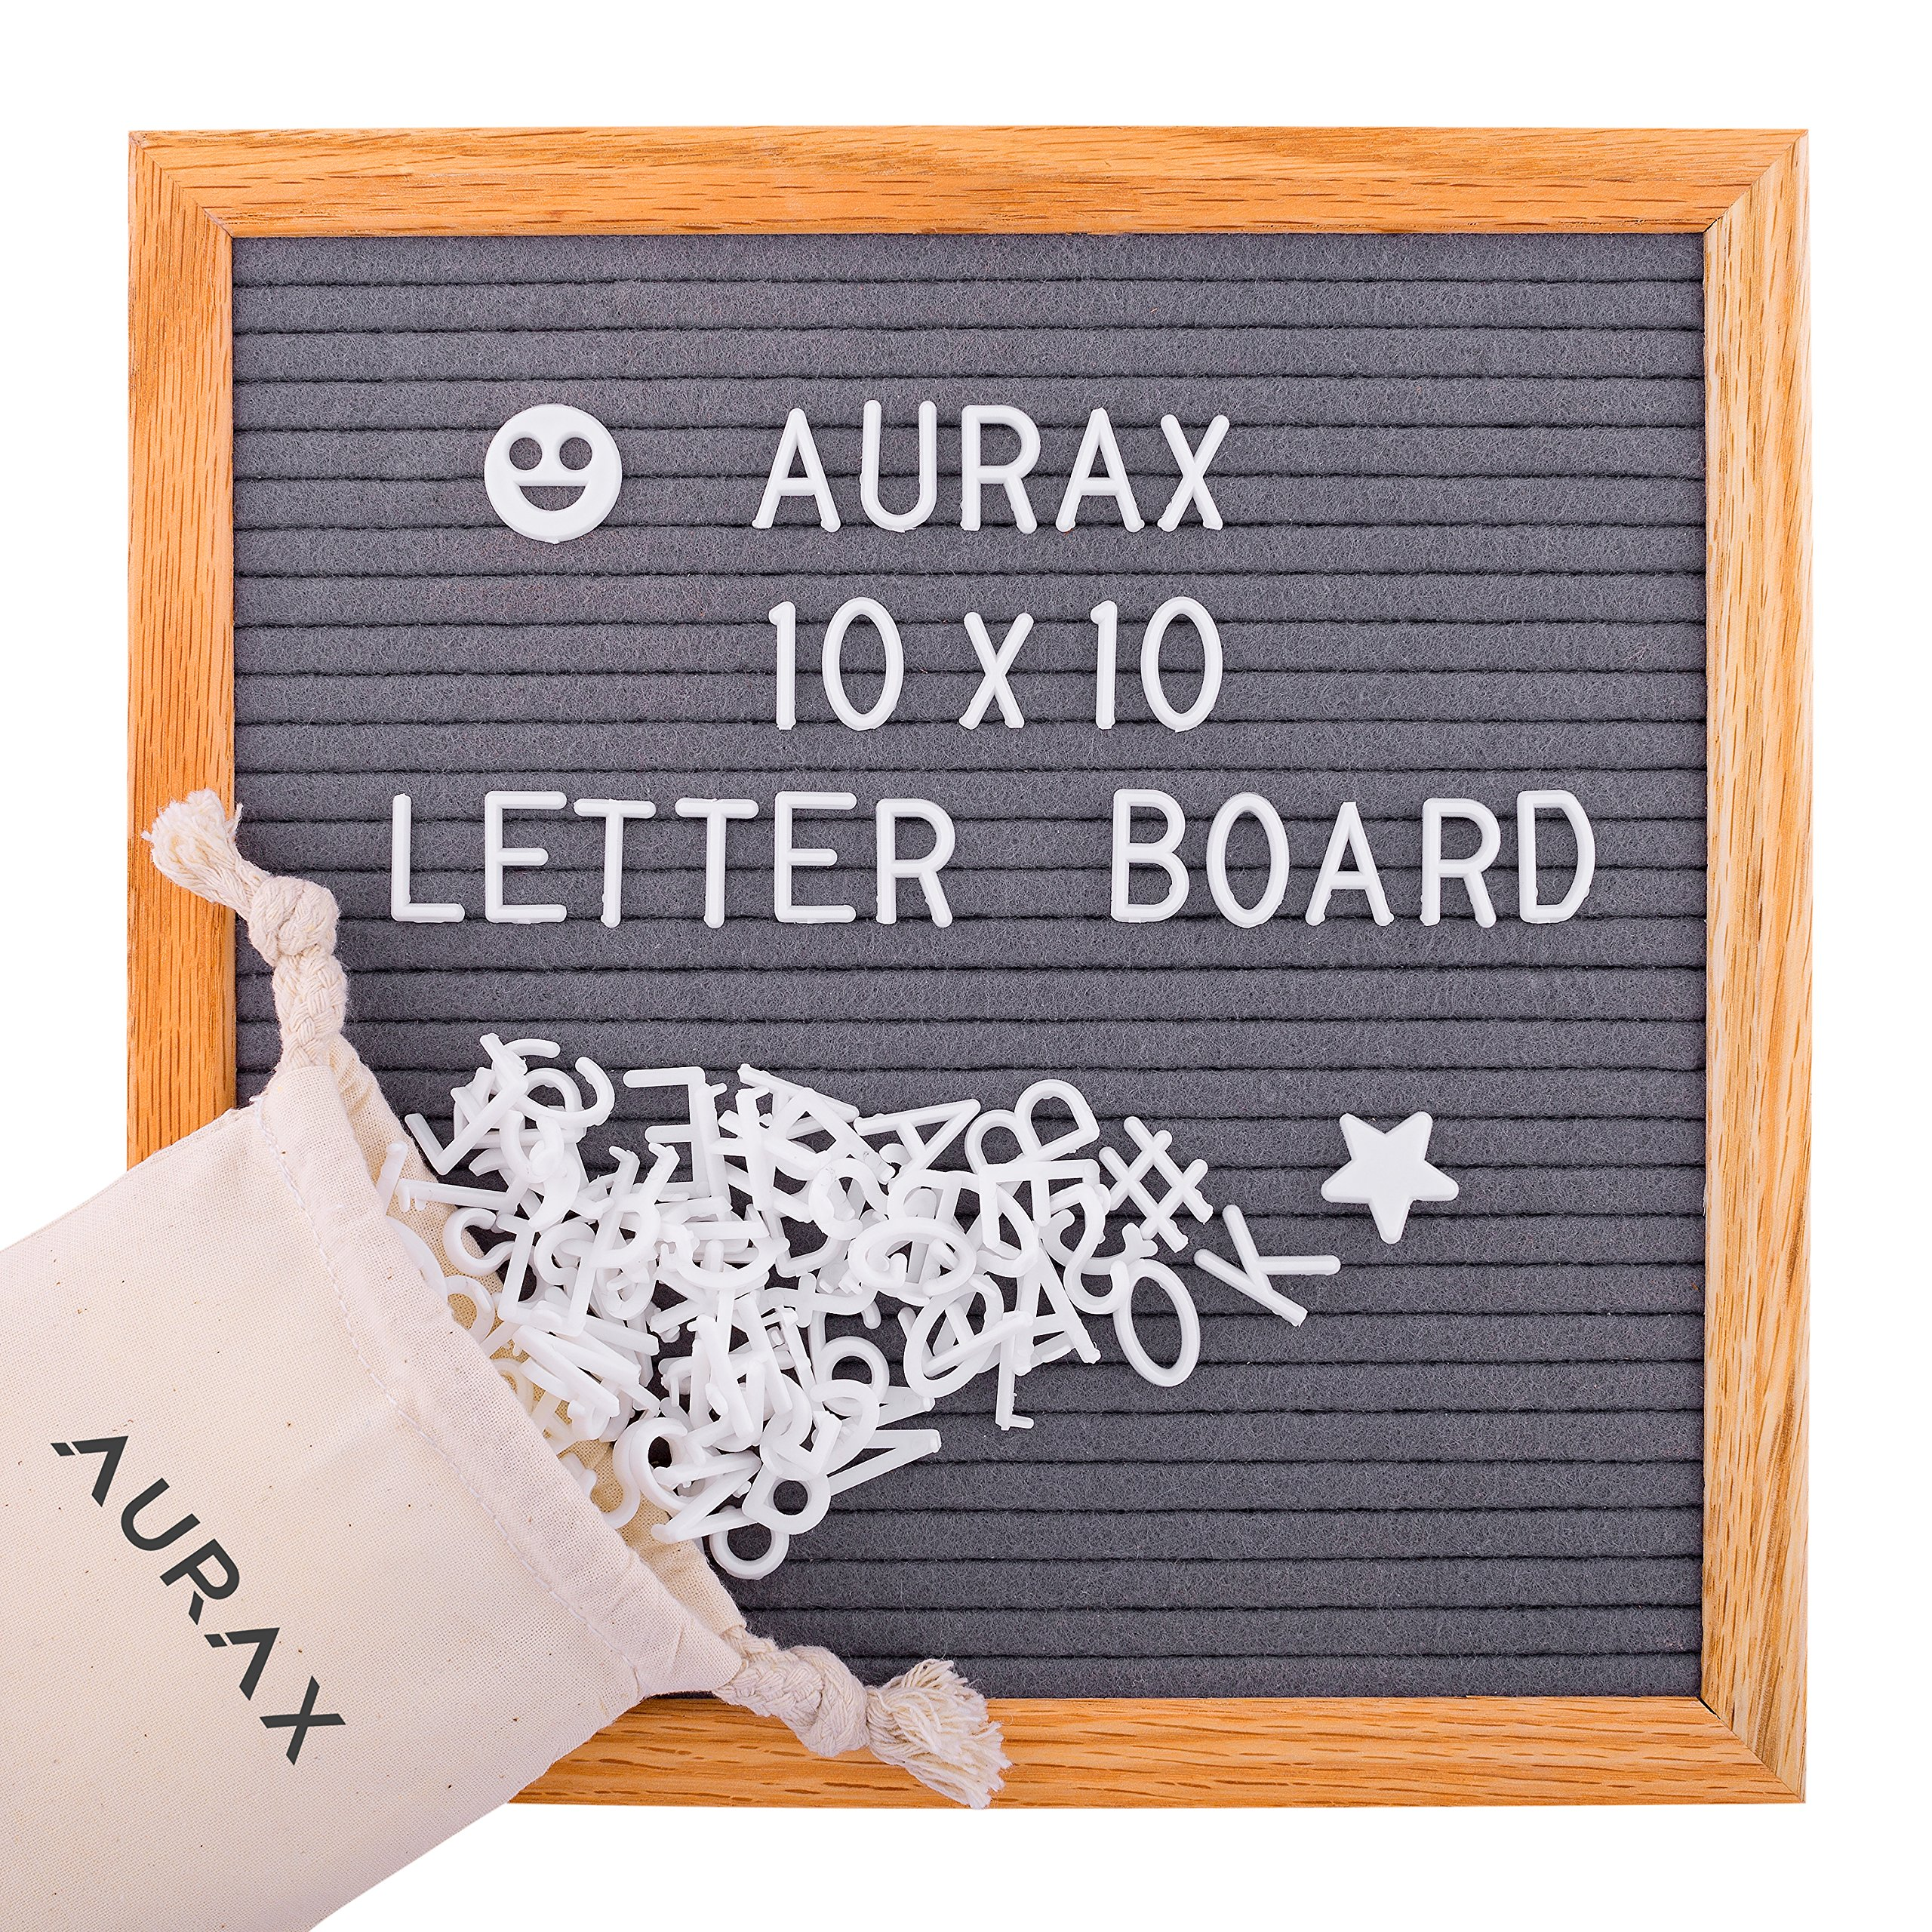 Grey Felt Letter Board 10x10 - Vintage Oak Frame & 290 Changeable White Letters, Numbers, Symbols, Wall Mount Hanger and FREE Canvas Letter Bag - Big Announcements, Wall Quotes, Pefect Gift Ideea, Toy